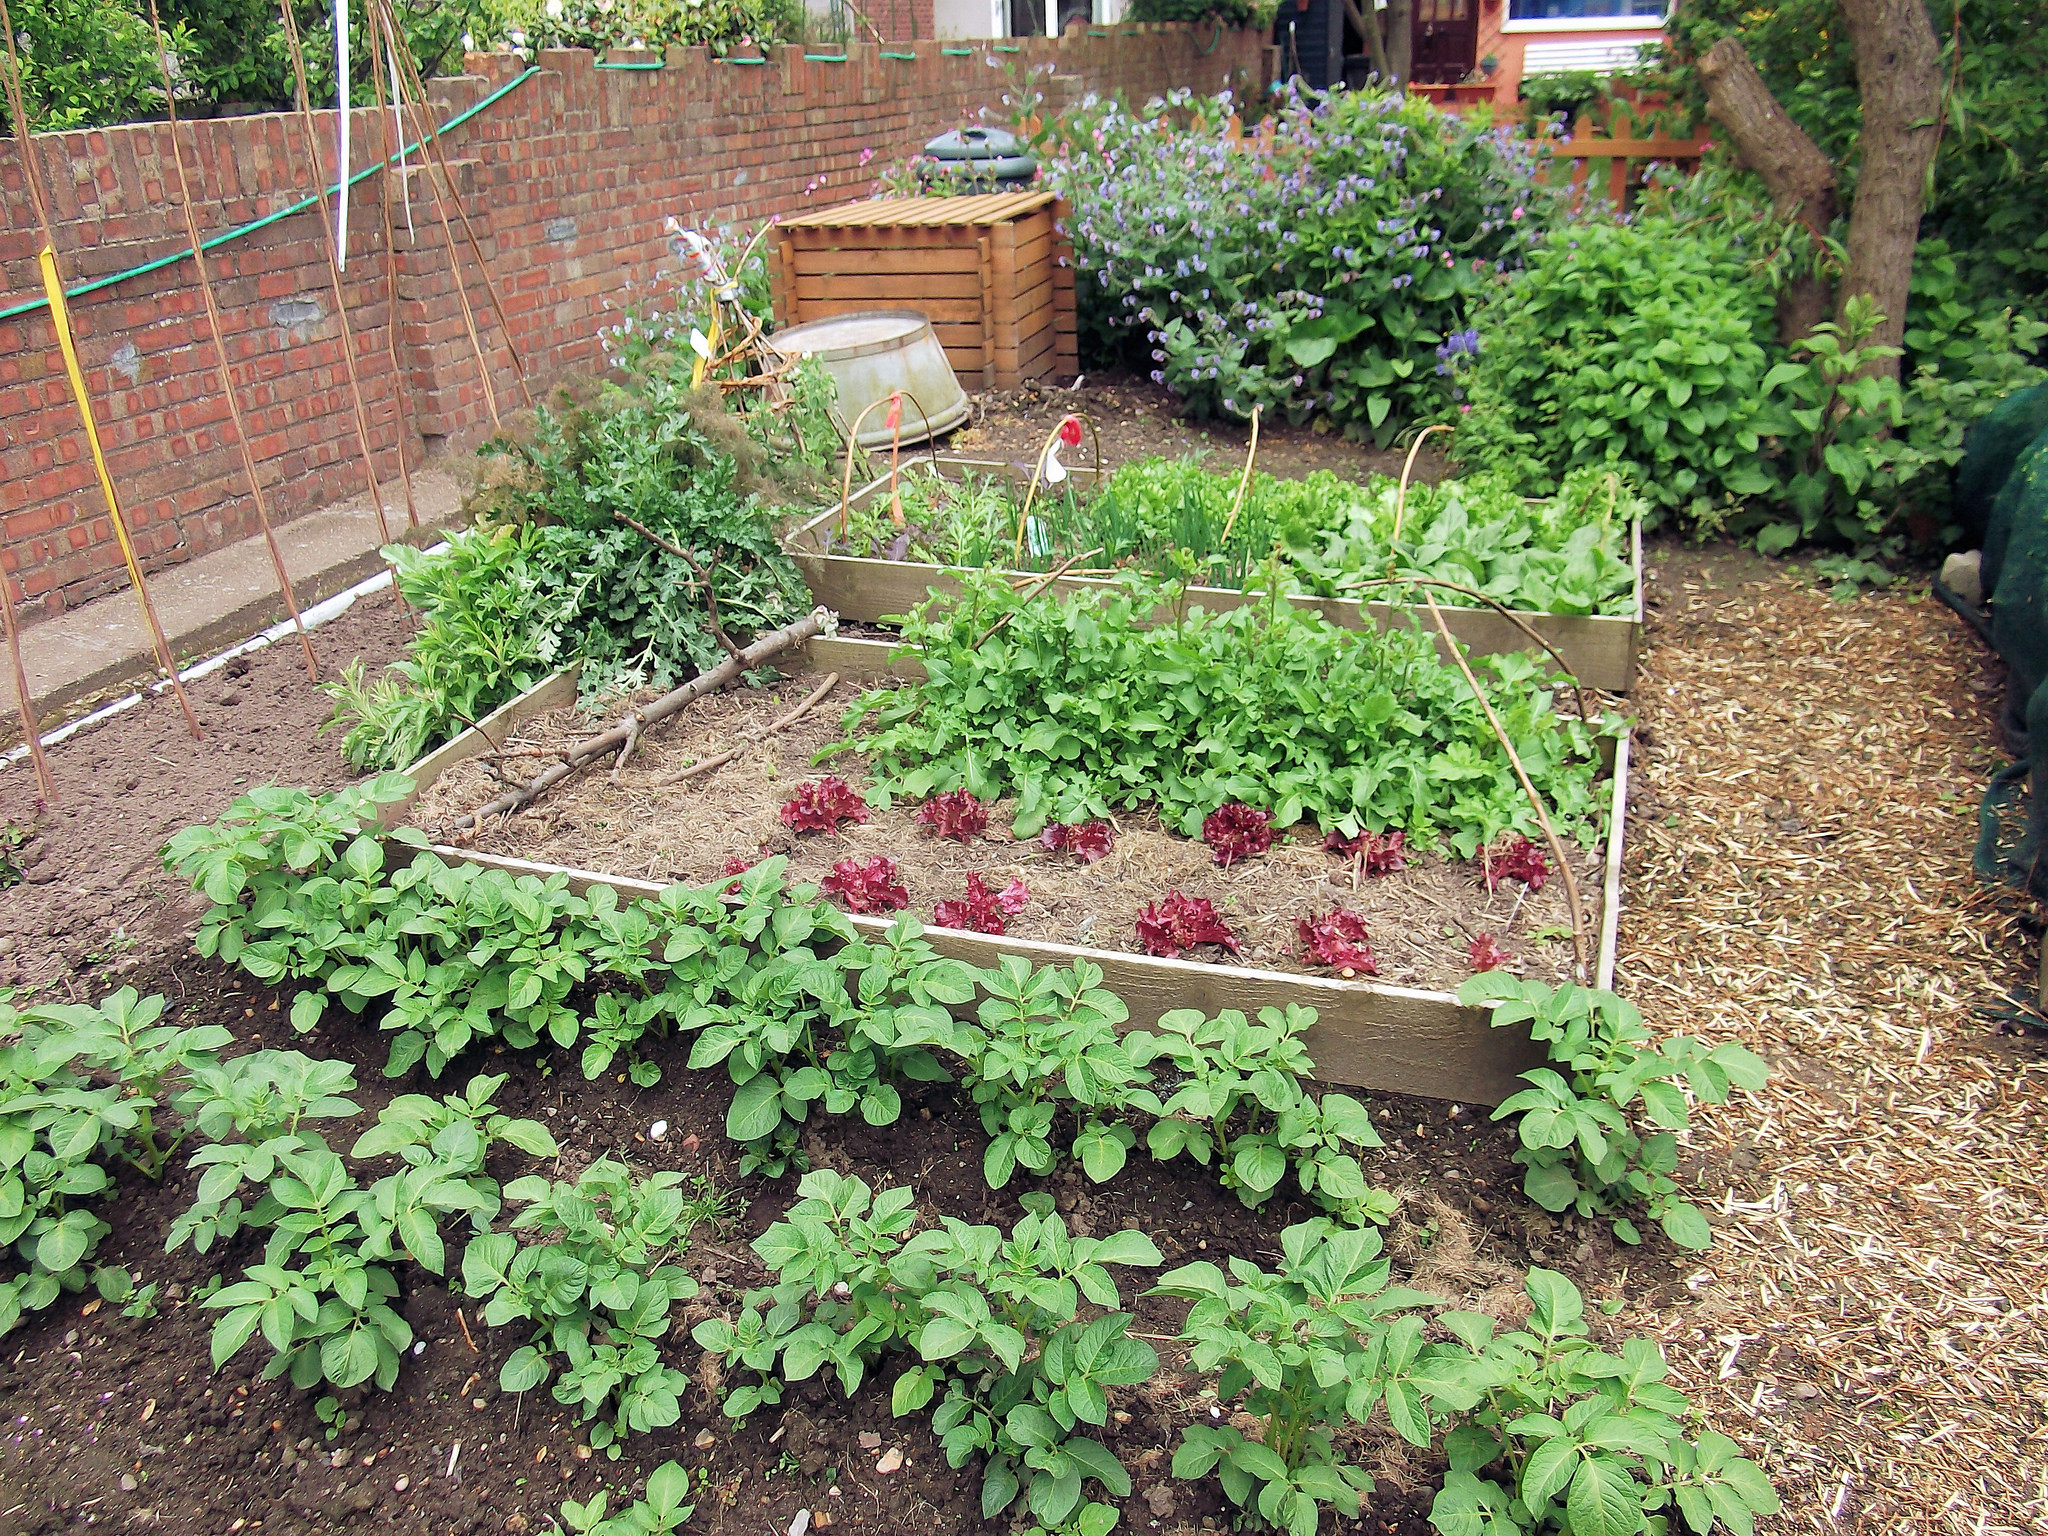 Learning how to start your own vegetable garden will liberate you from rising food prices, so start today ... photo by CC user brighton on Flickr